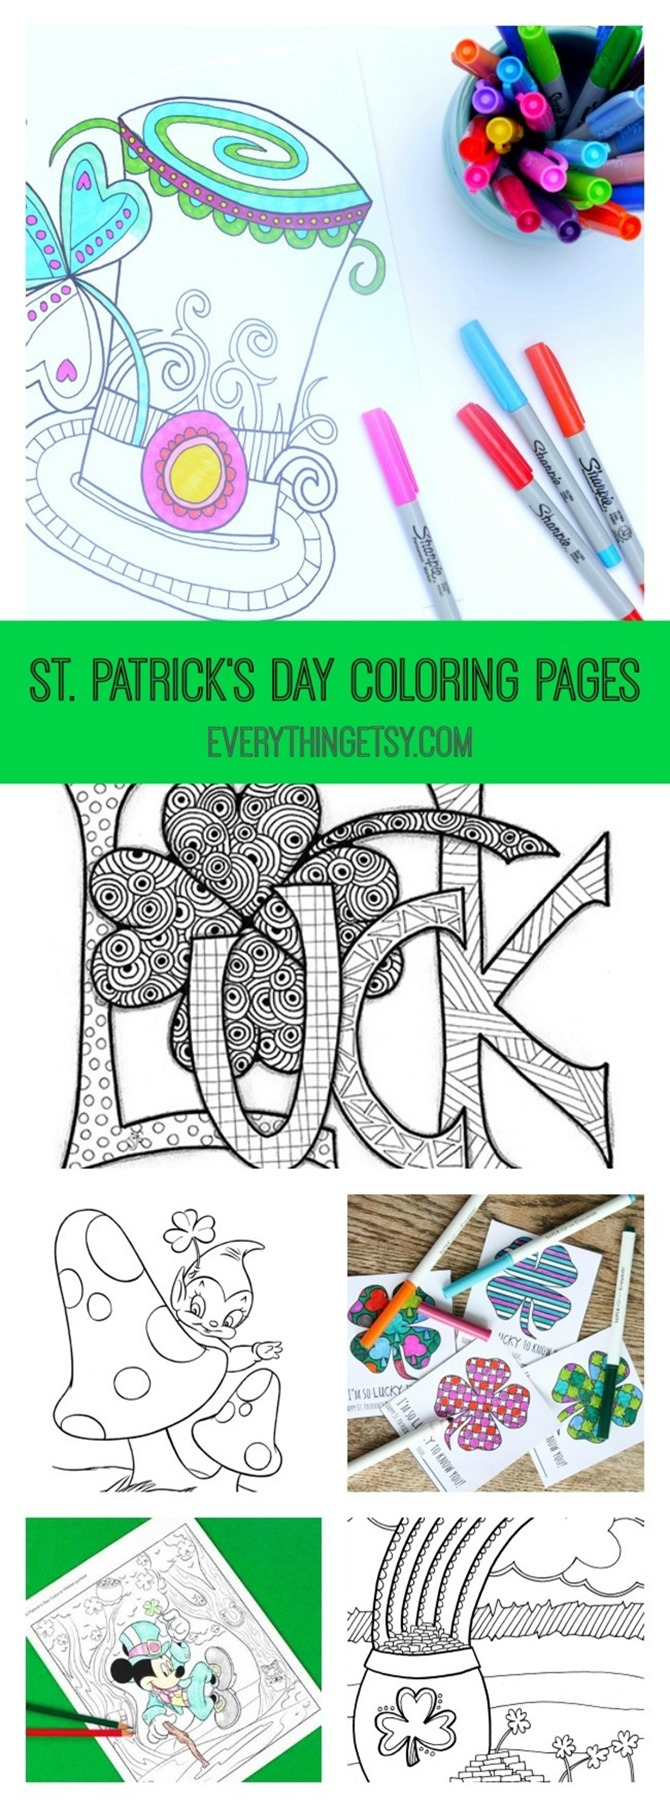 12-St.-Patricks-Day-Printable-Coloring-Pages-for-Adults-Kids-at-EverythingEtsy-1